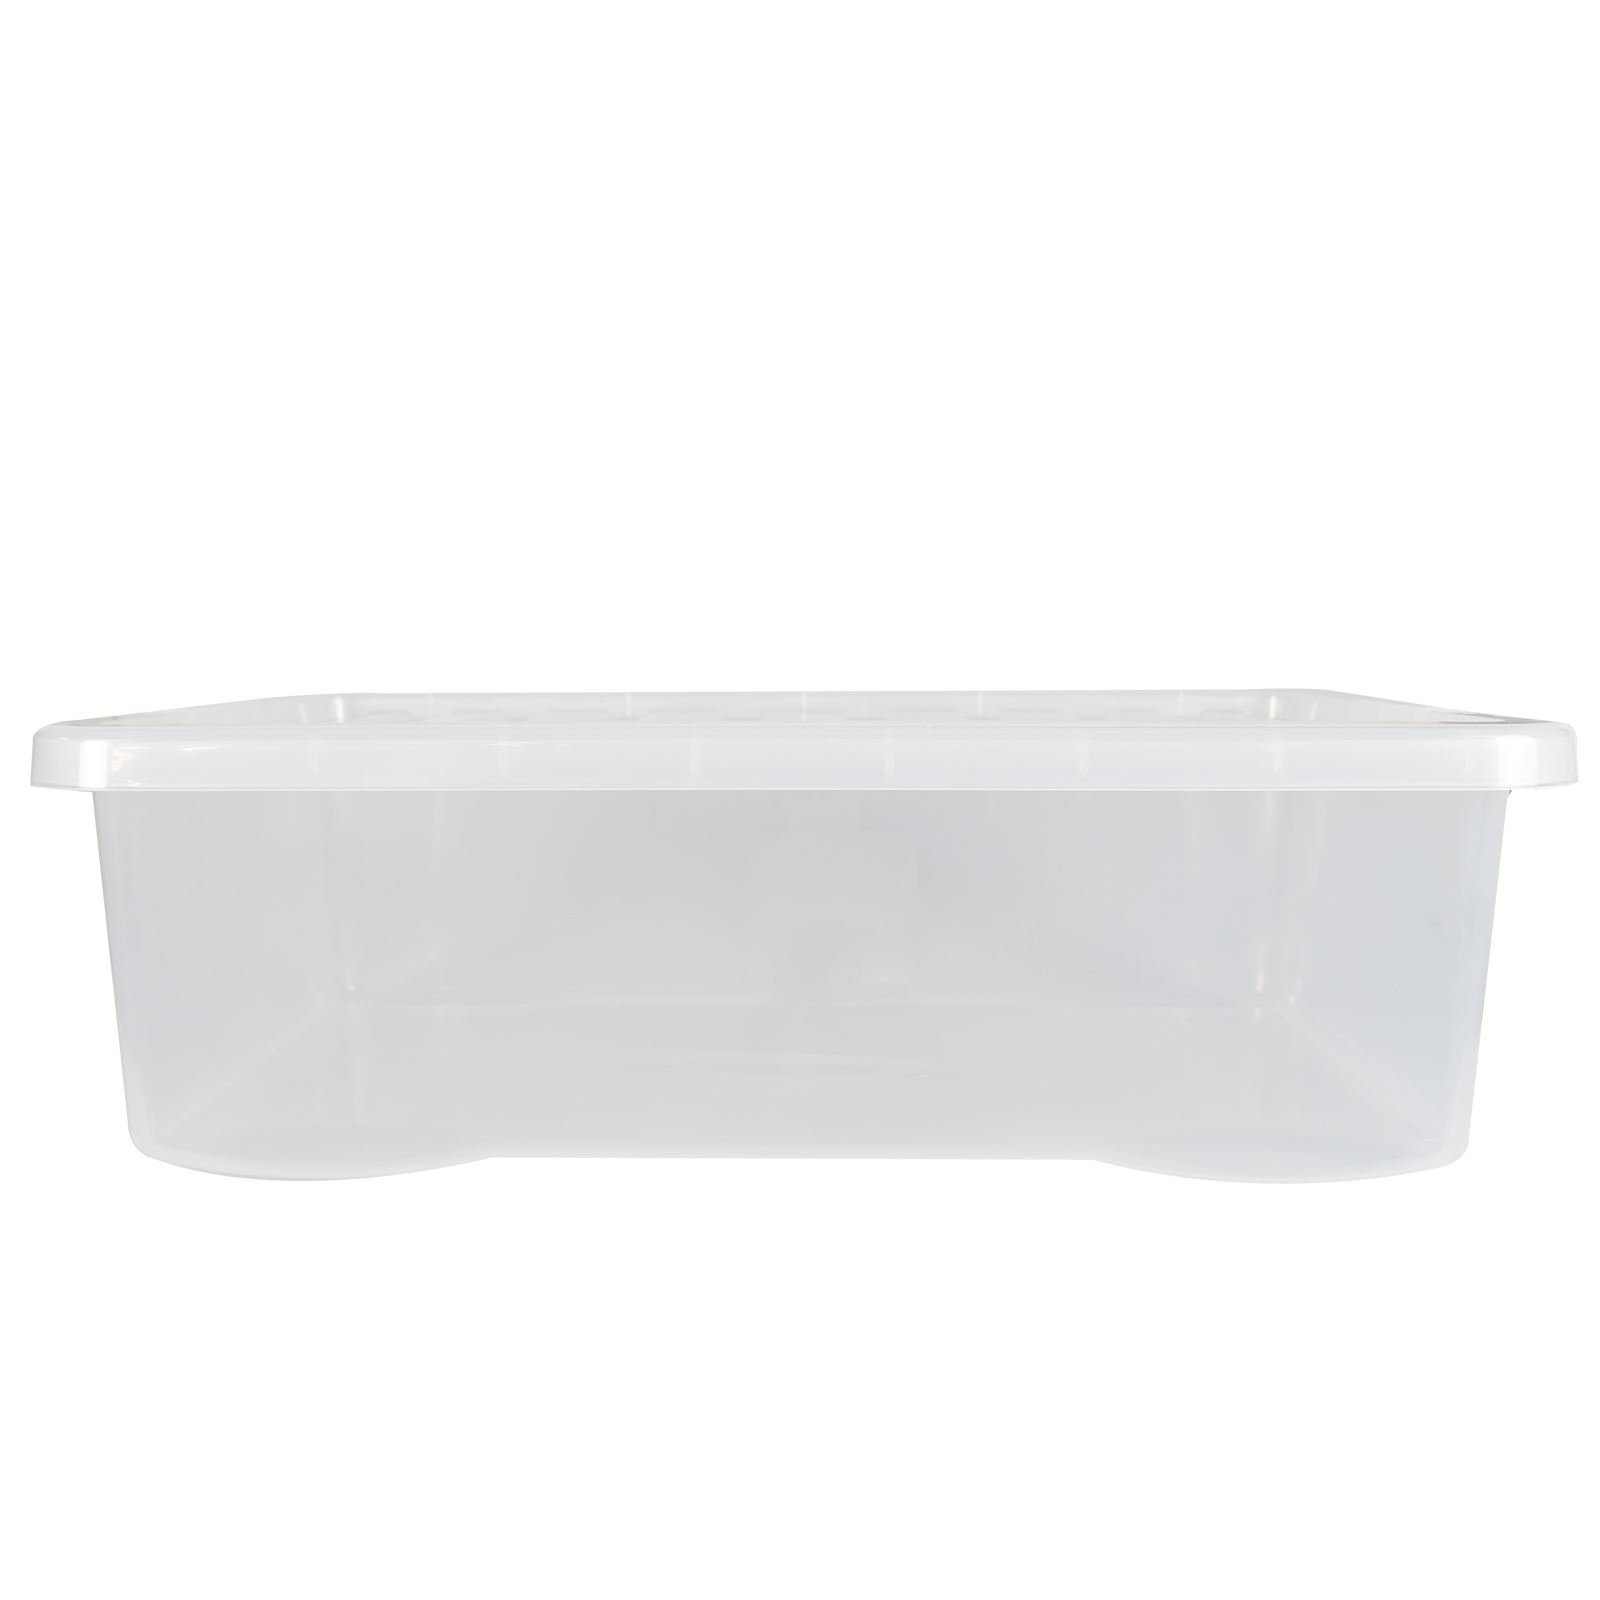 Wham-Crystal-Clear-Plastic-Storage-Box-Secure-Clip-on-Lid-Under-Bed-Space-Save thumbnail 22